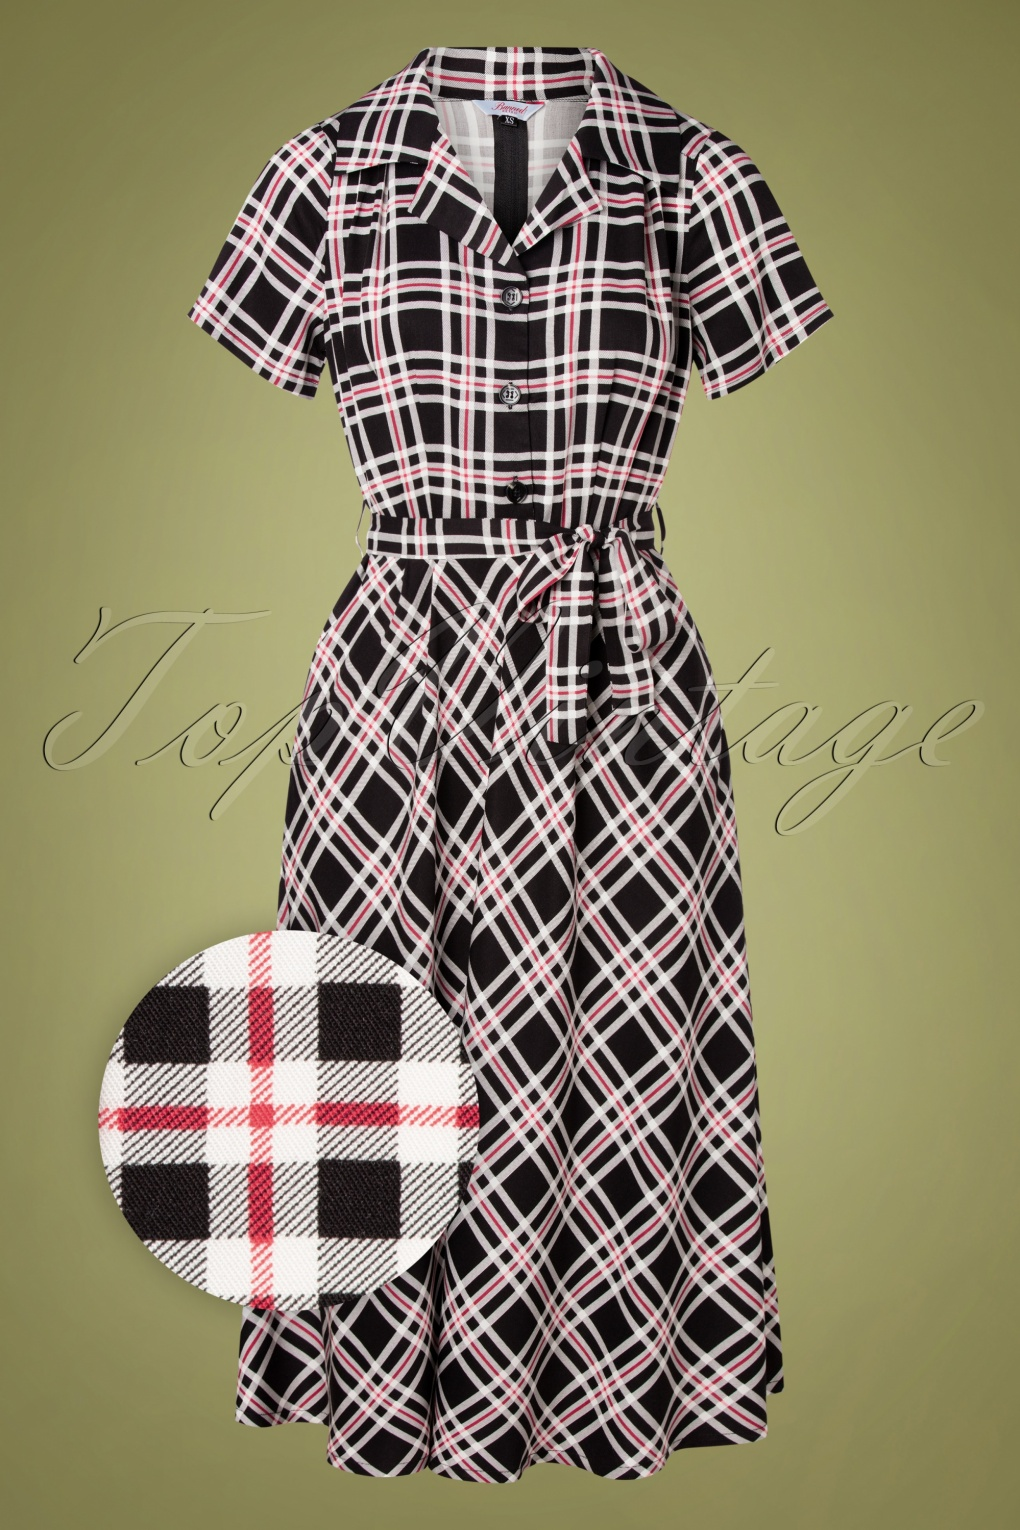 Vintage Shirtwaist Dress History 50s Dorothy Check Dress in Black £50.10 AT vintagedancer.com